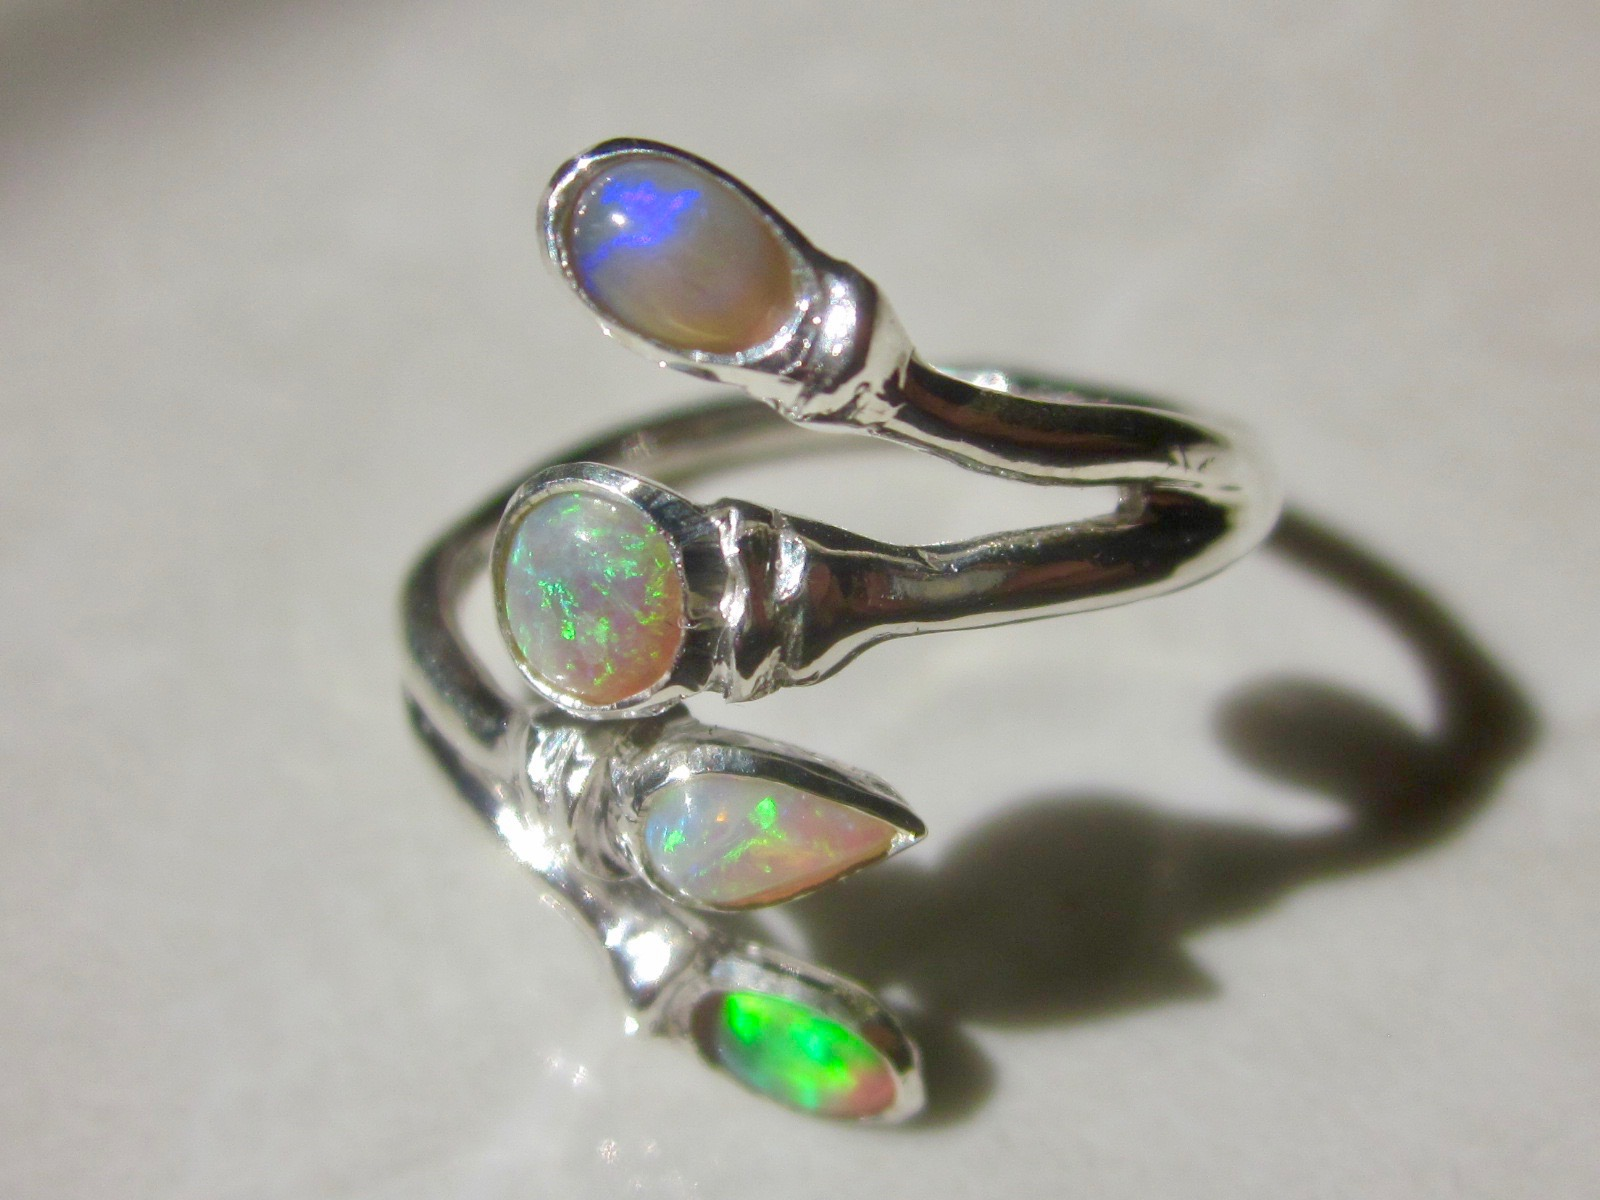 agate hela constellation rings products green collections ring thethorragnarokcollection gemstone